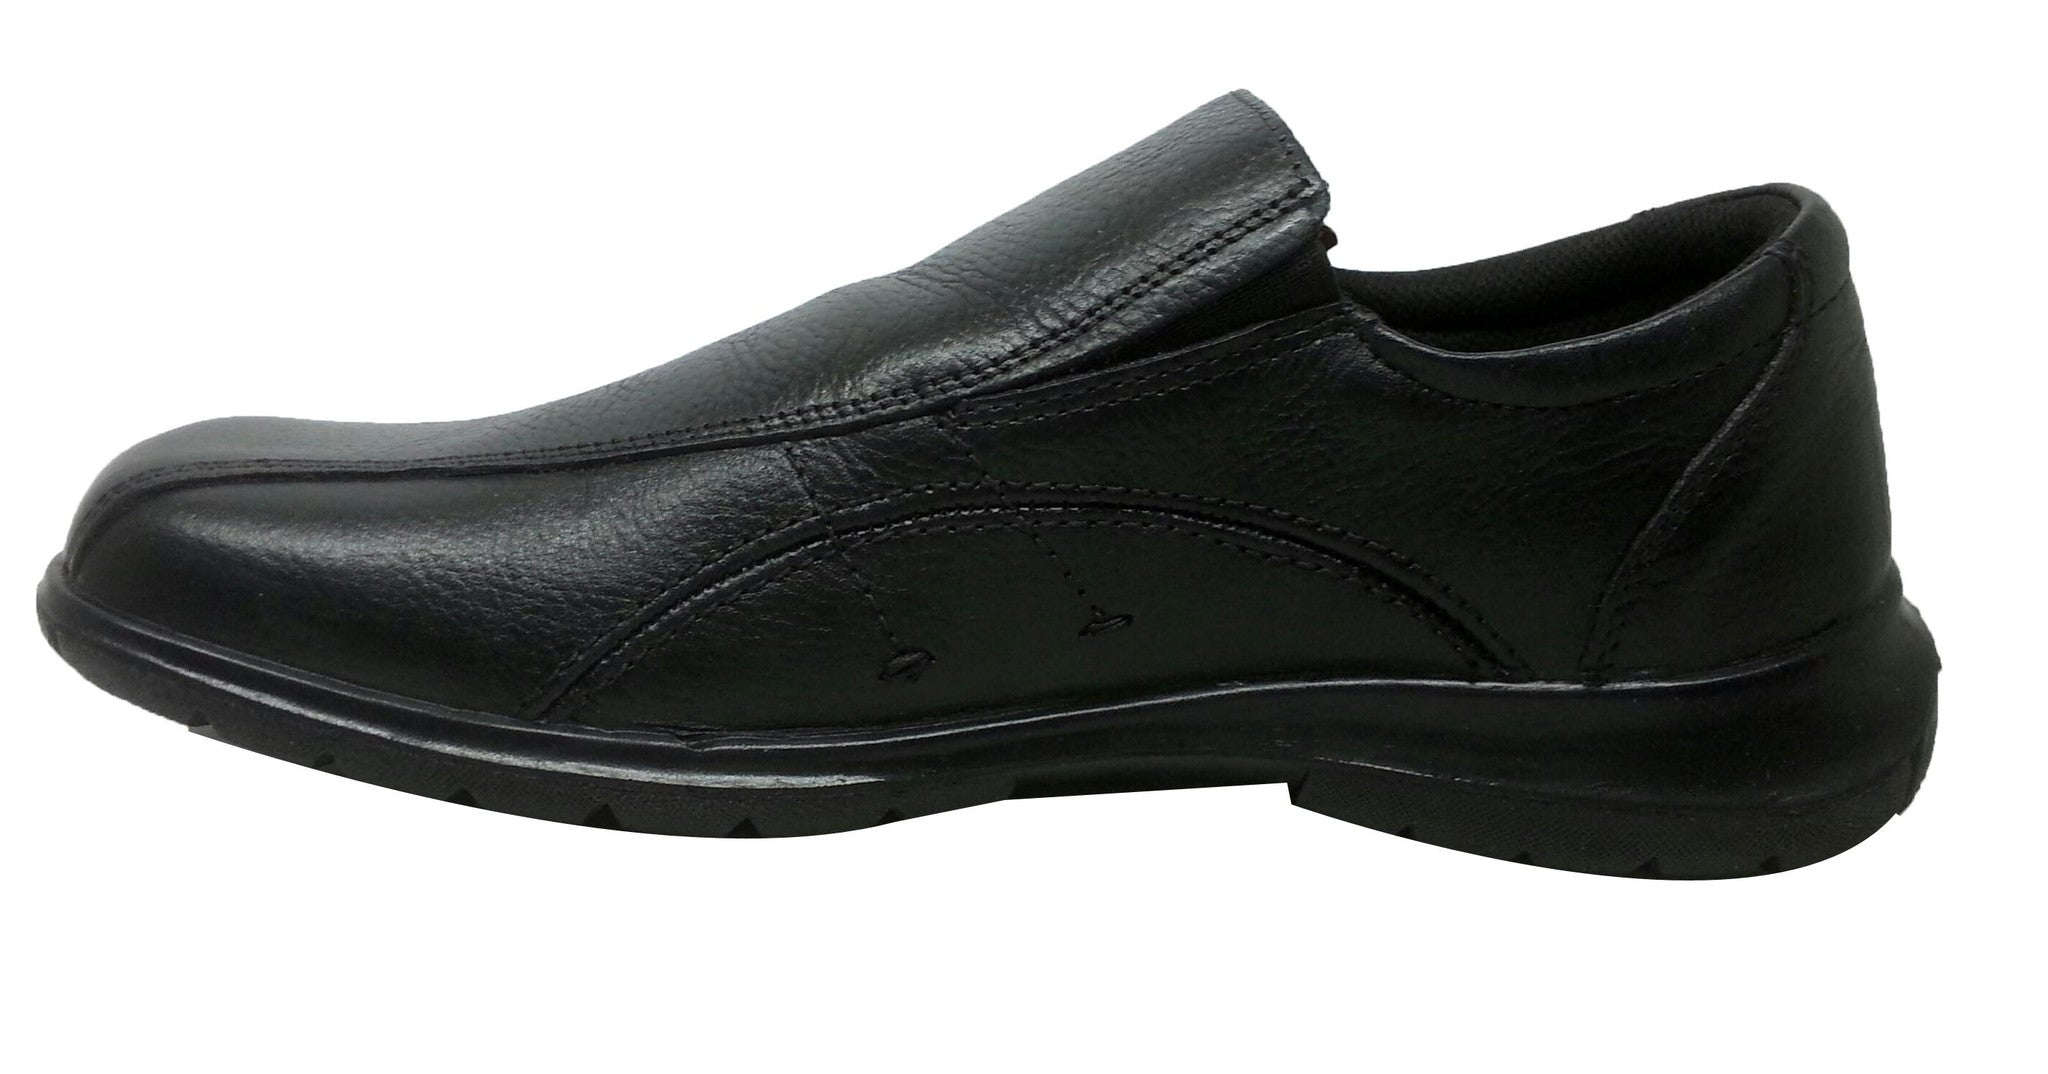 Goyalsons Shoes Rts 7301